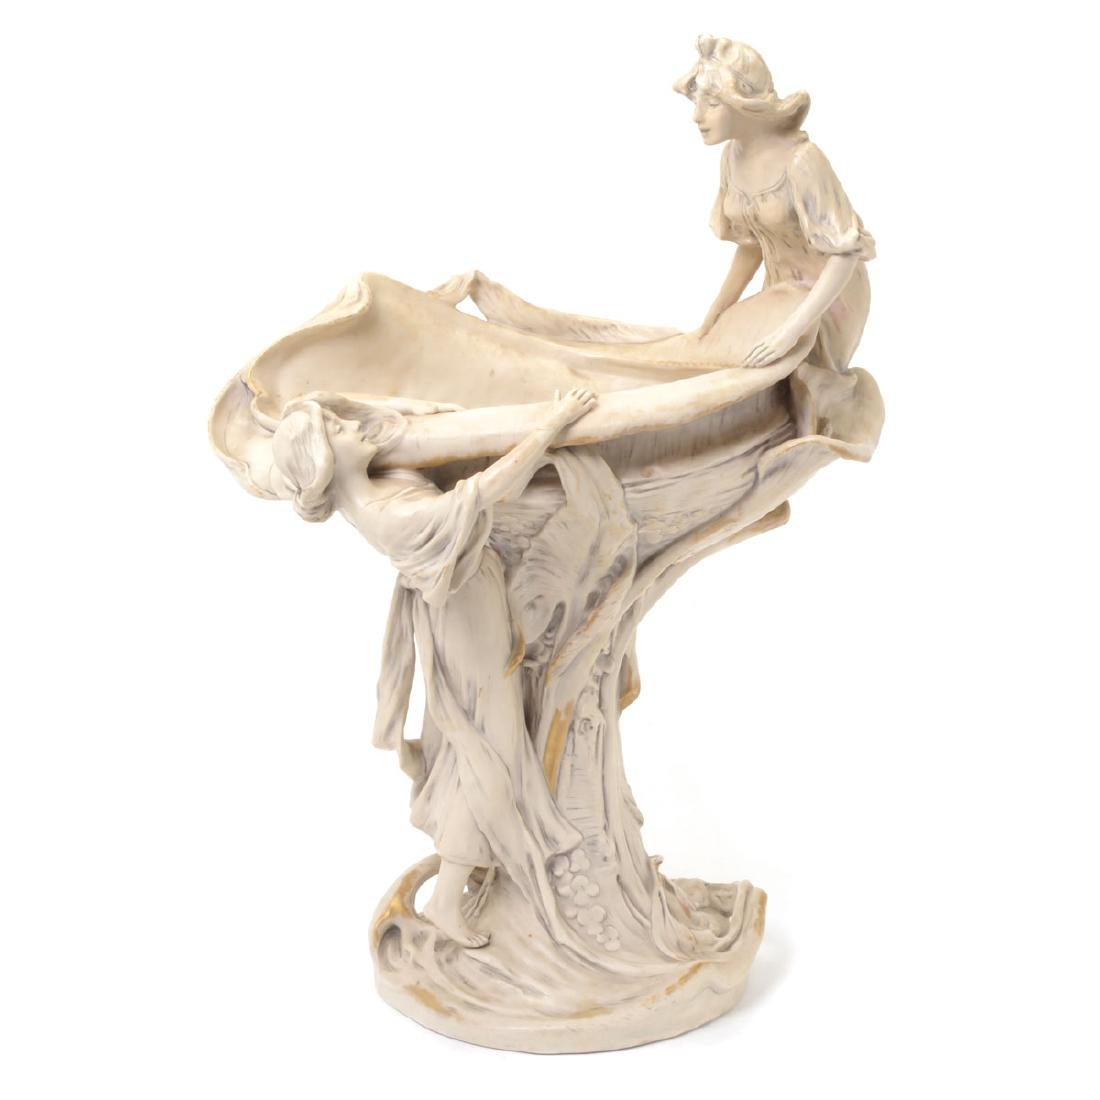 Large Art Nouveau Royal Dux Porcelain Compote Modeled